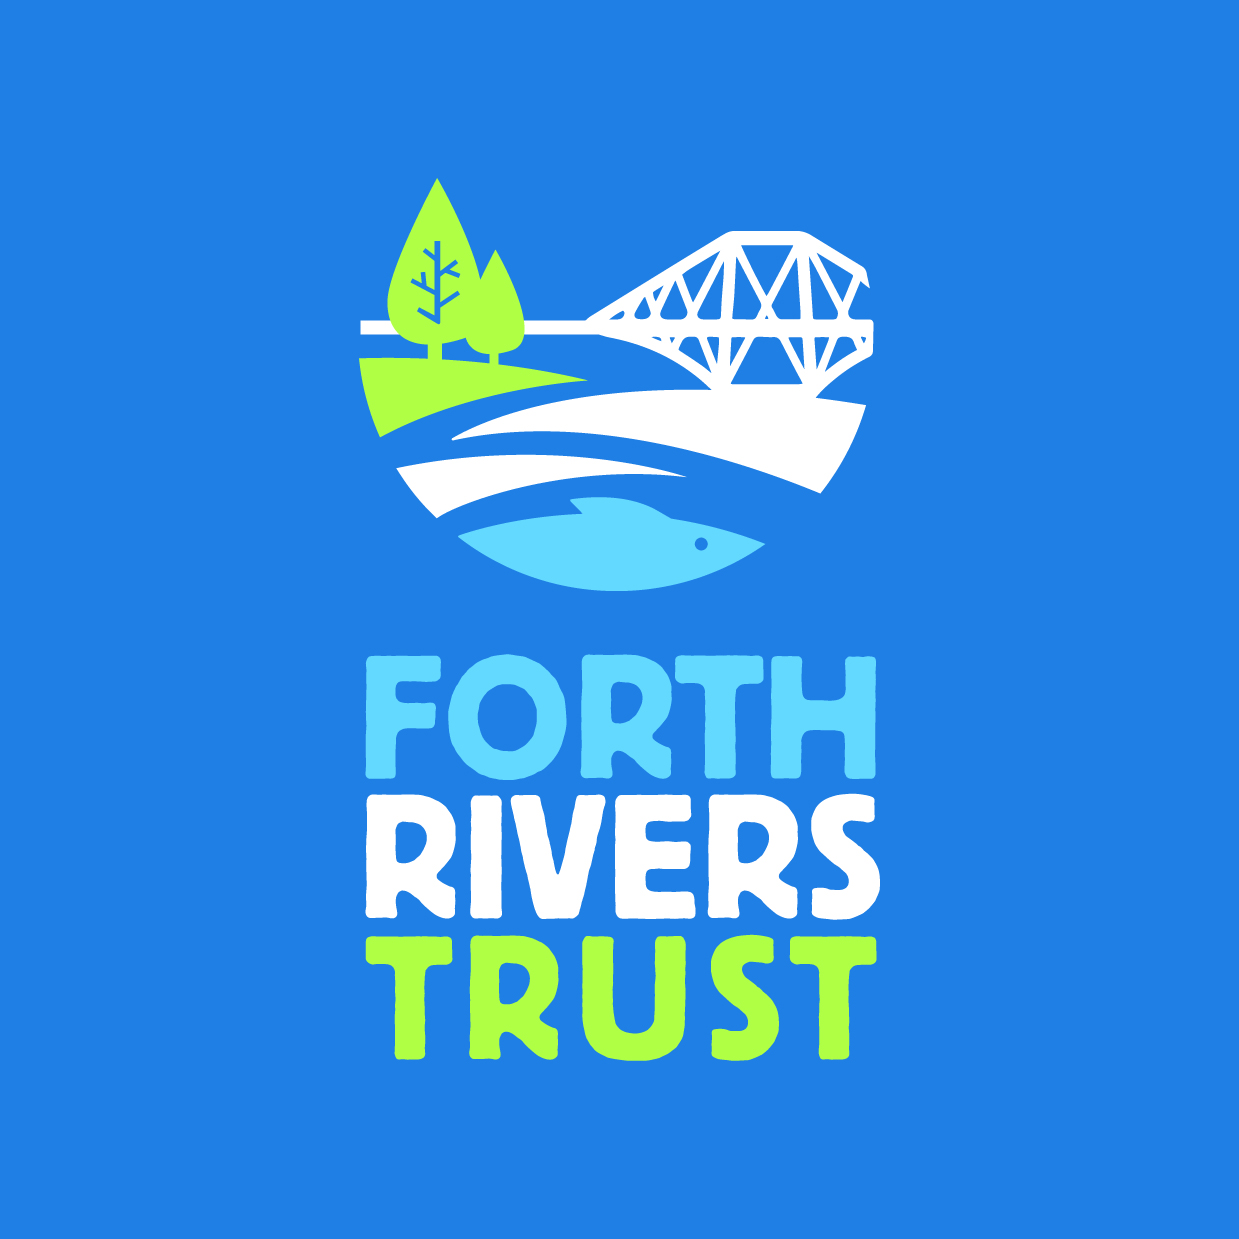 Forth Rivers Trust